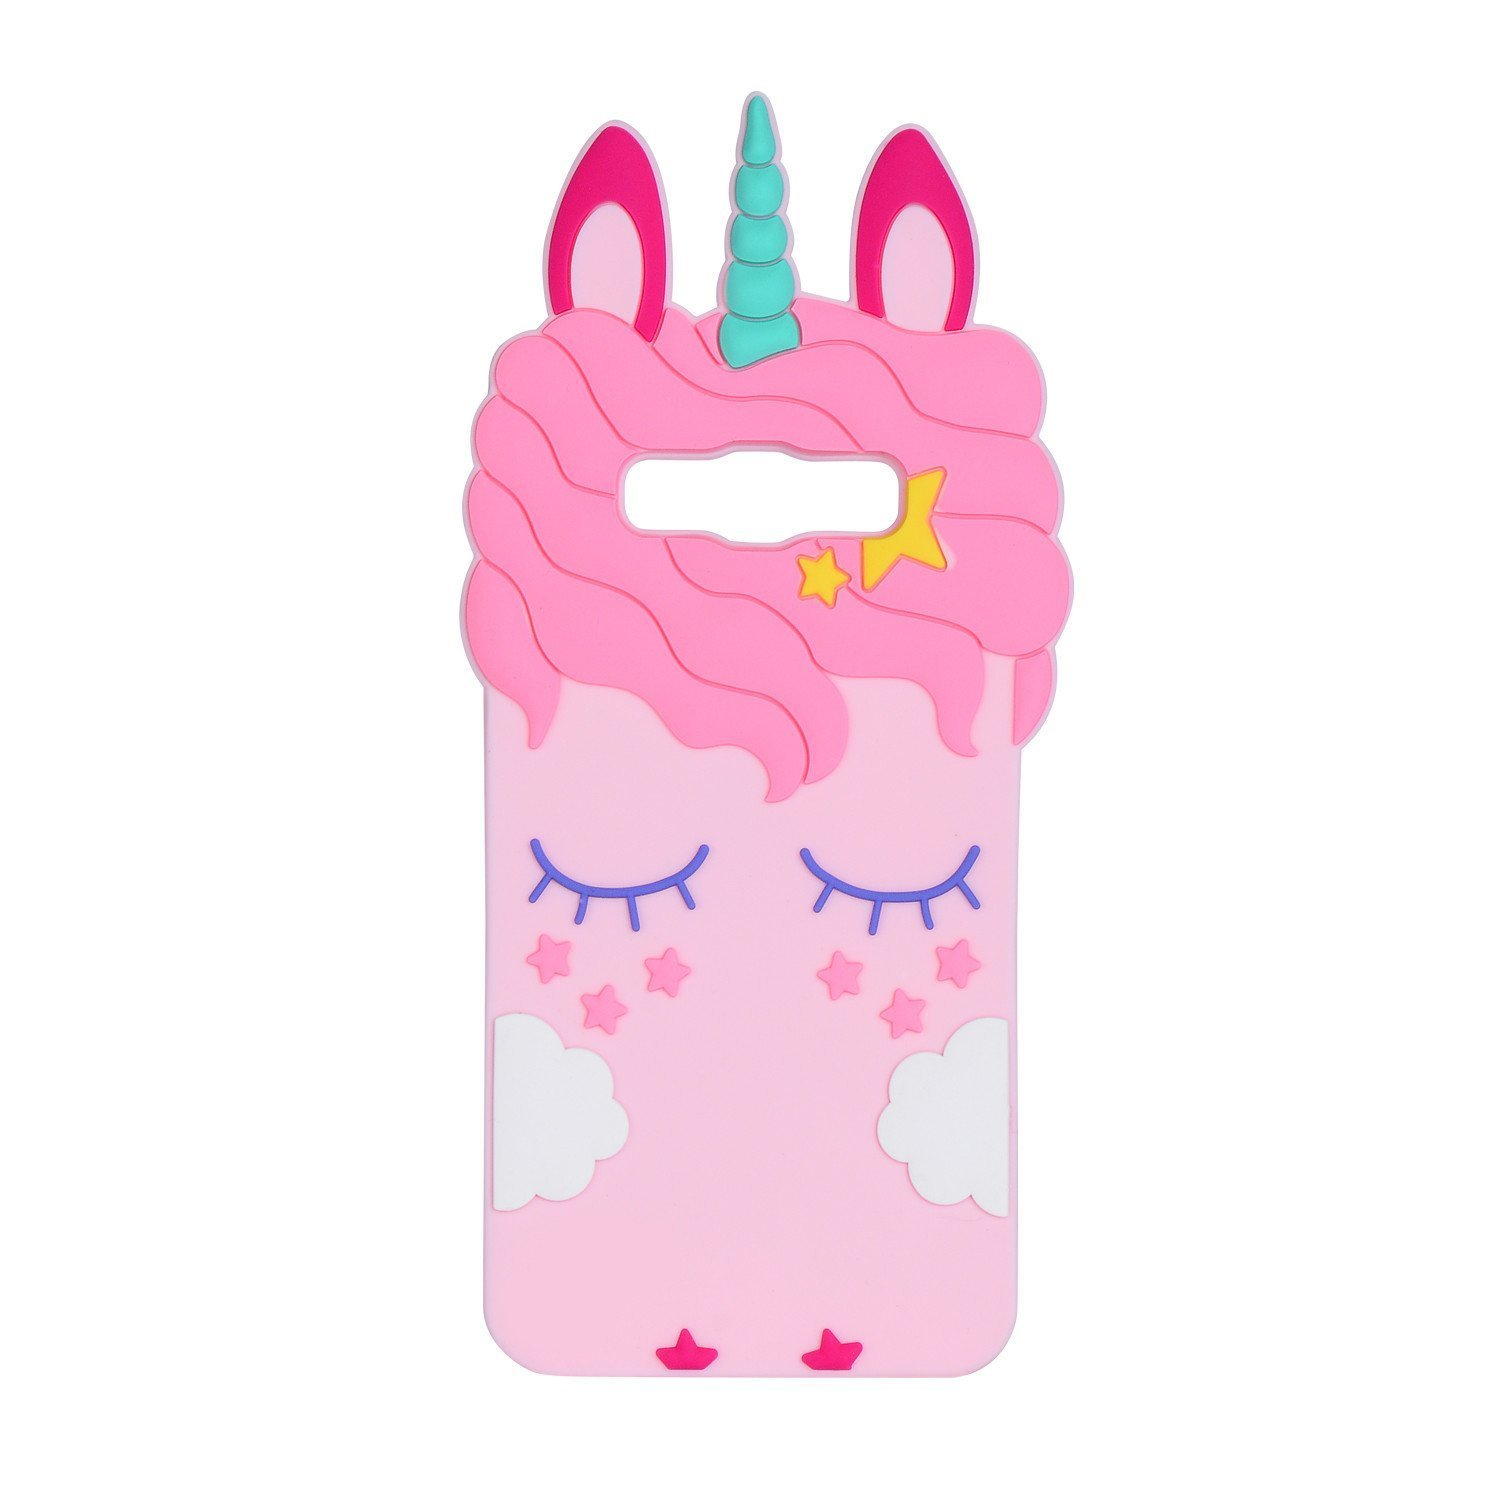 Unicorn Case for Galaxy G530 3D Cover, SevenPanda Silicone Cartoon Star Eyelash Eyeball Design Funny Shockproof Case Soft Protection for Samsung Galaxy Grand Prime/G530H/G5308/SM-G530 - Pink Unicorn G530-JieMaoMa-Fen